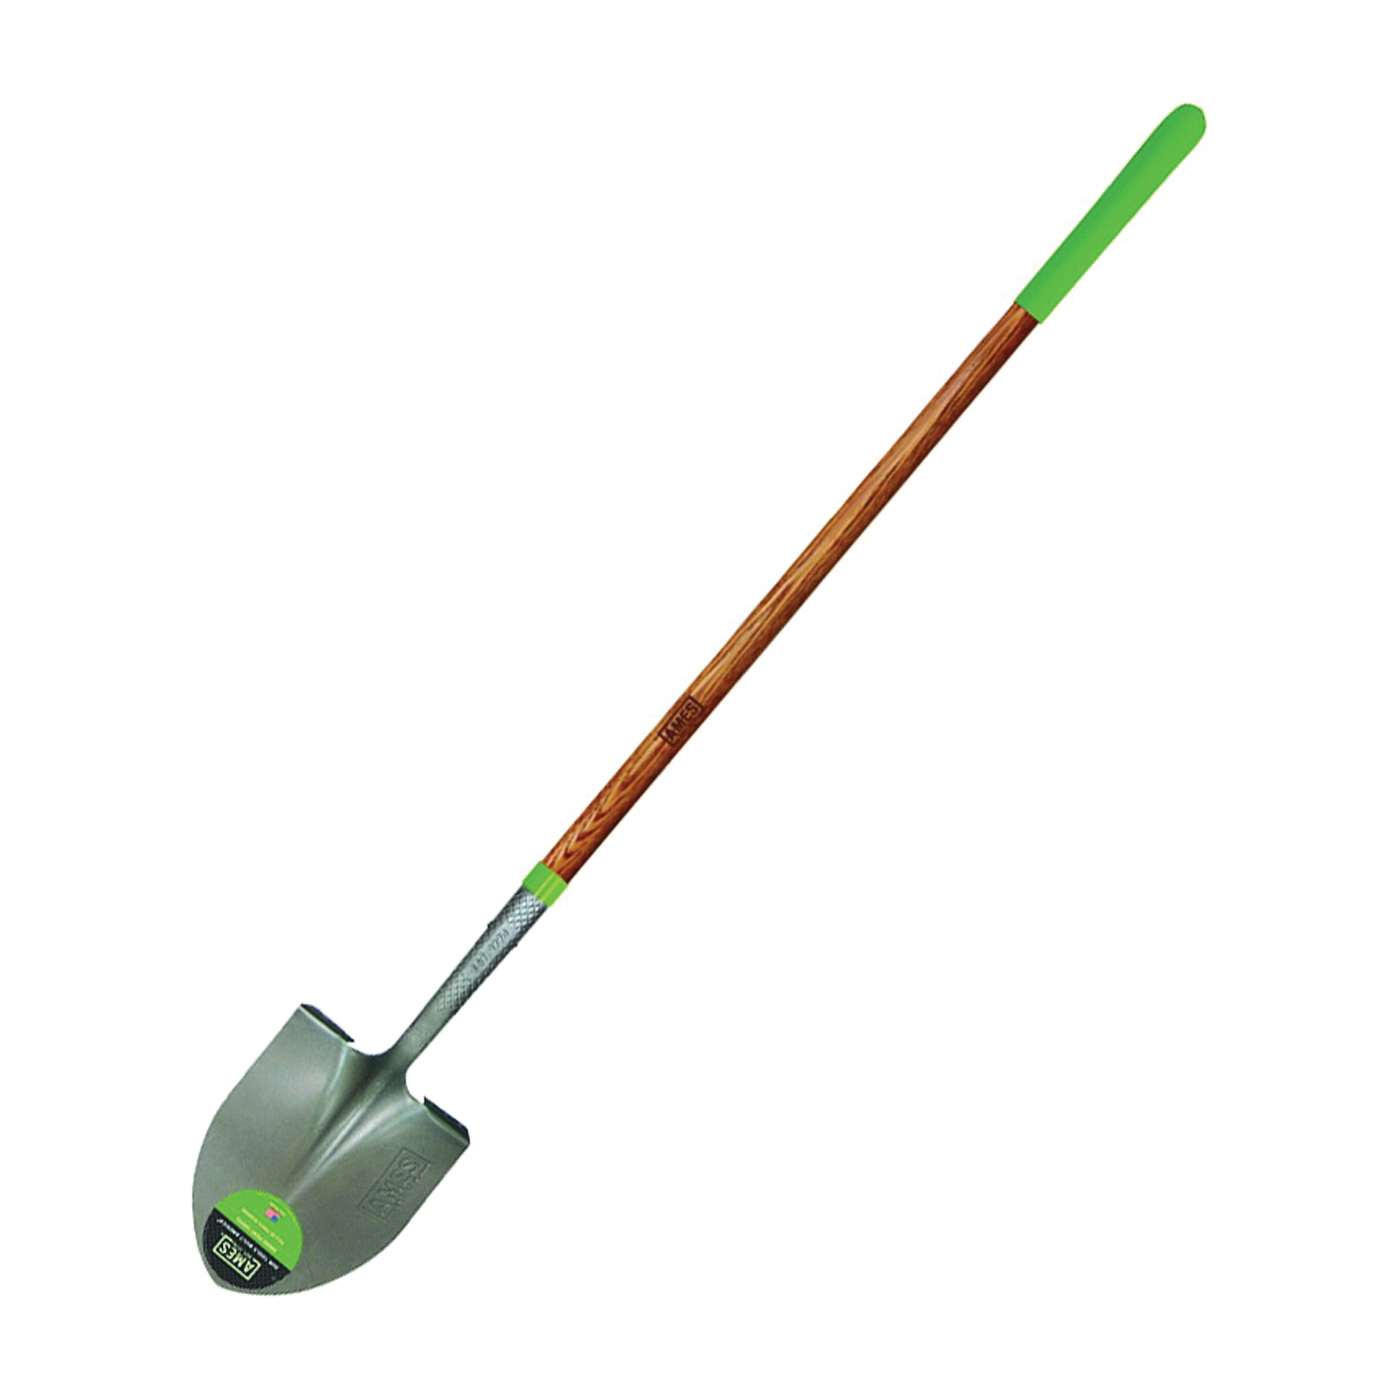 Picture of AMES 2535600 Shovel, 8-3/4 in W Blade, Steel Blade, Hardwood Handle, Long Handle, 48 in L Handle